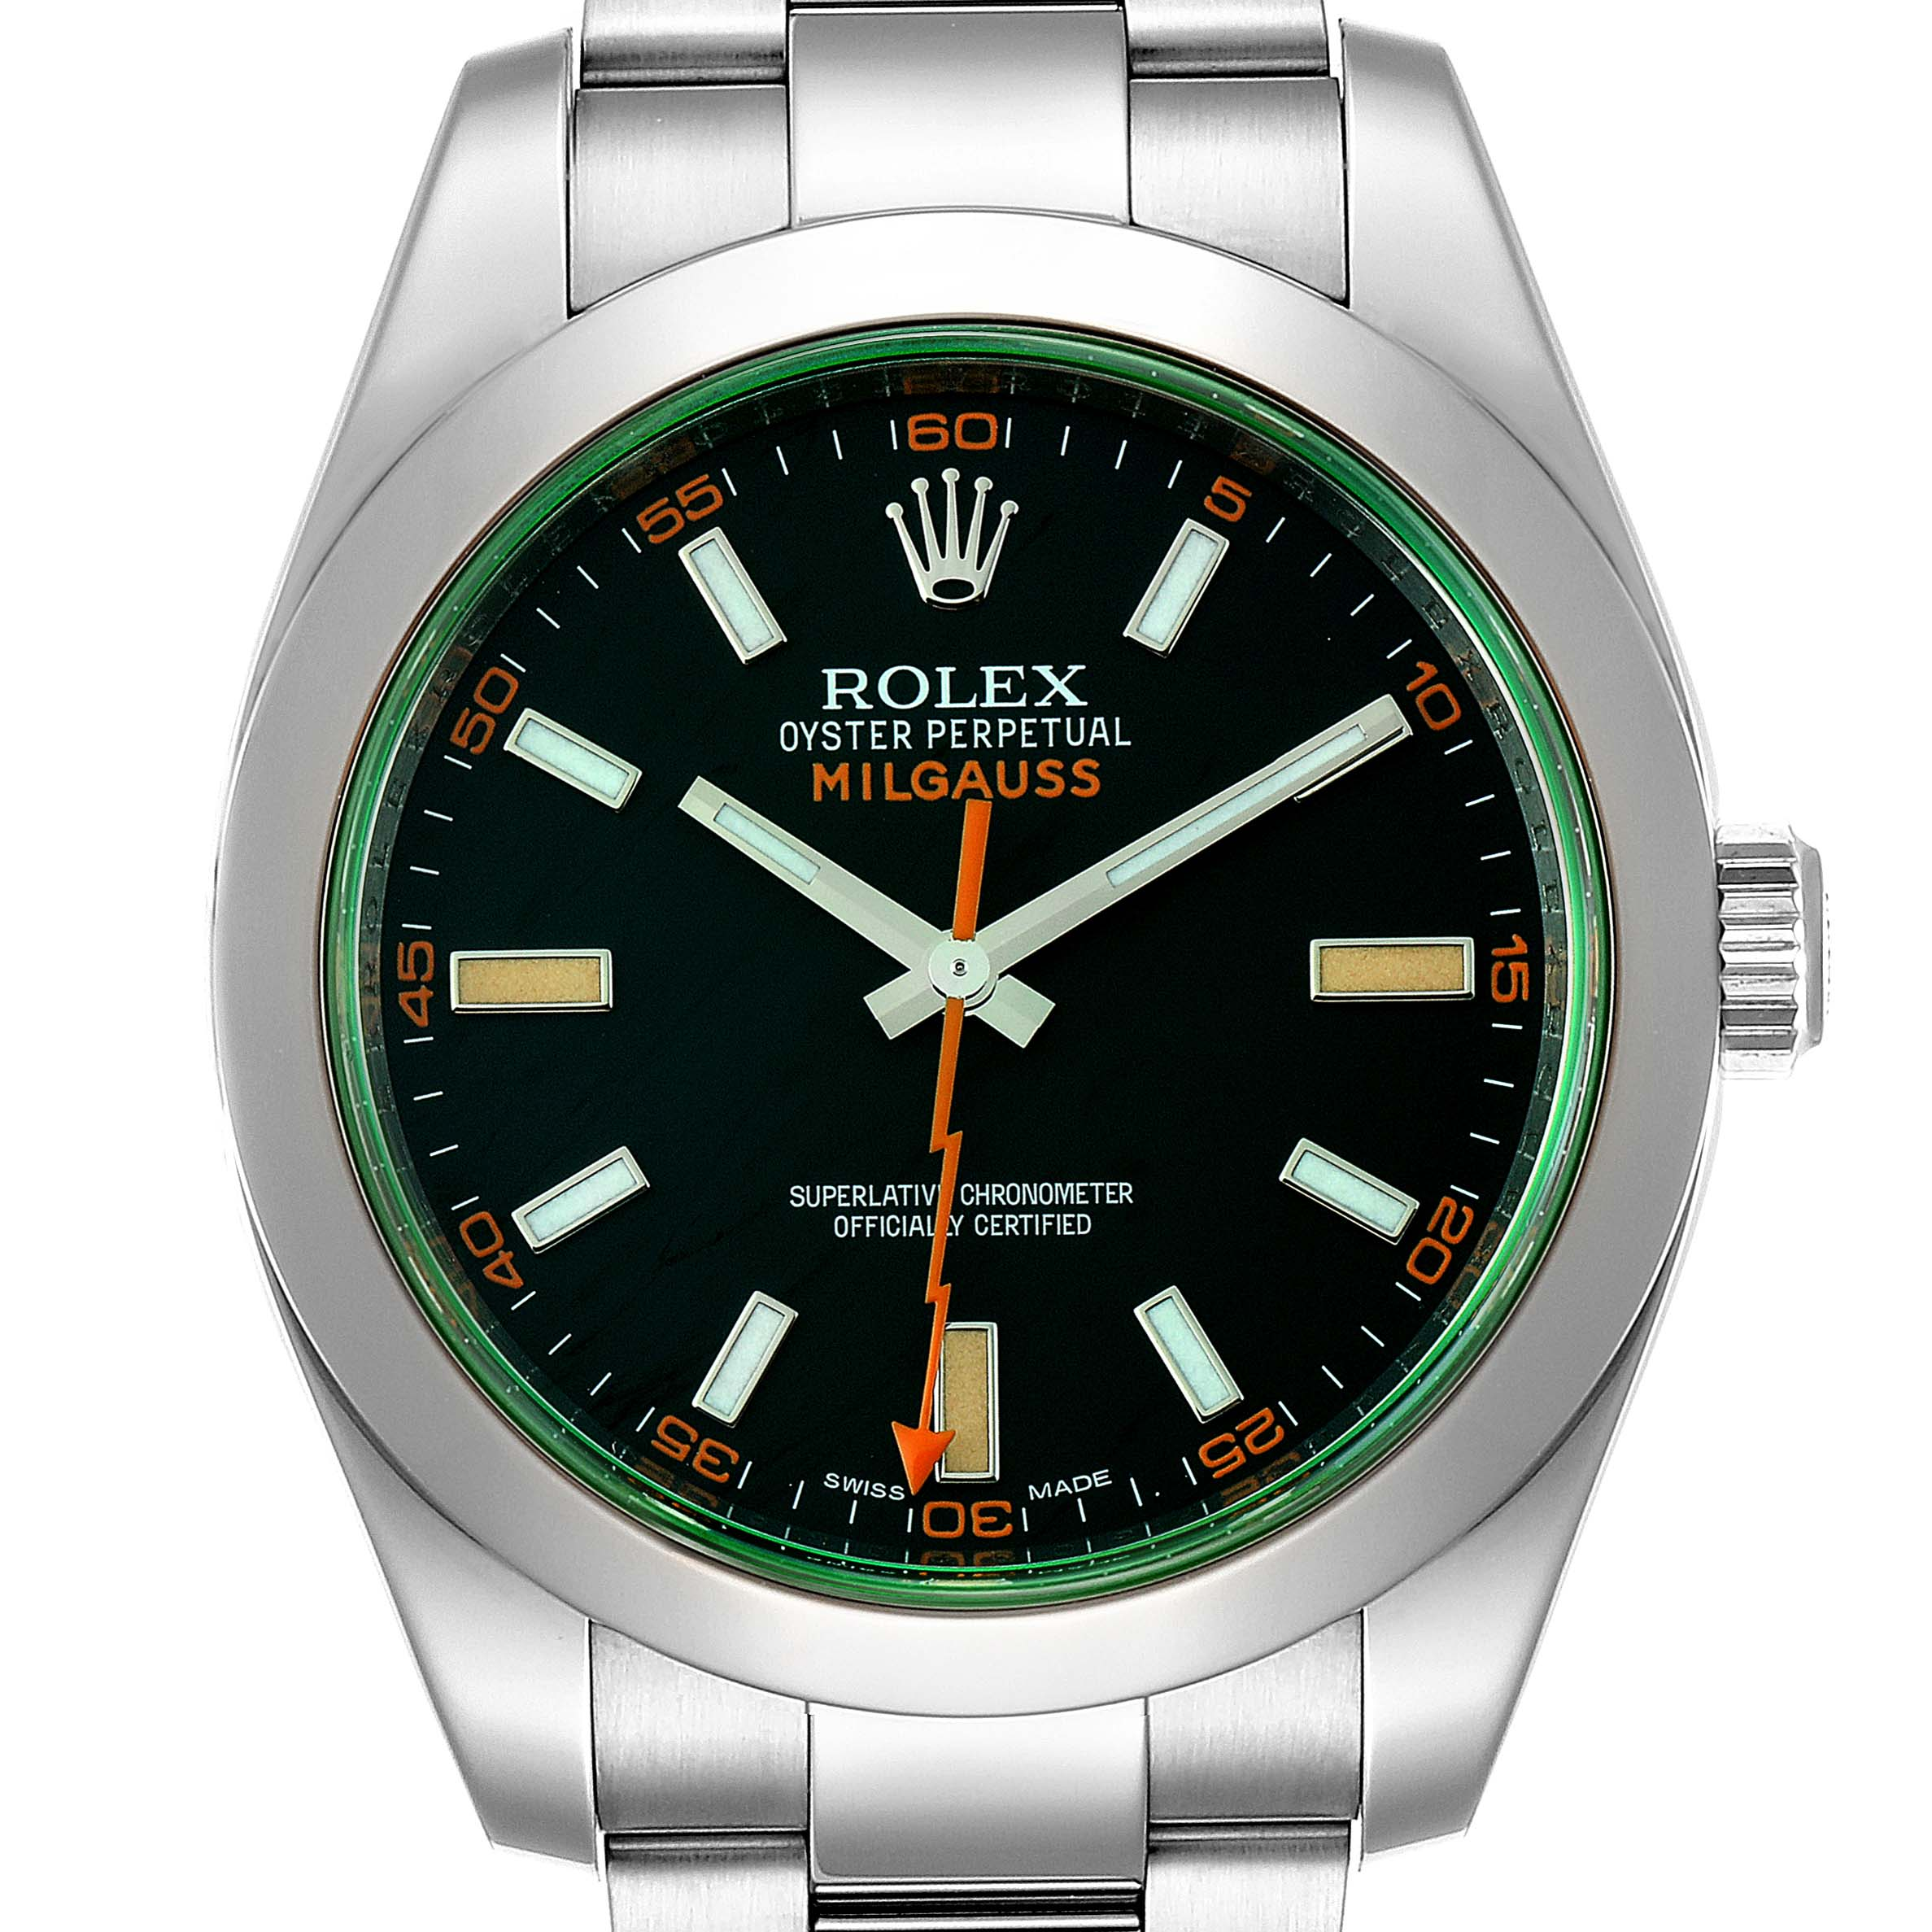 Photo of Rolex Milgauss Black Dial Green Crystal Steel Mens Watch 116400V Box Card